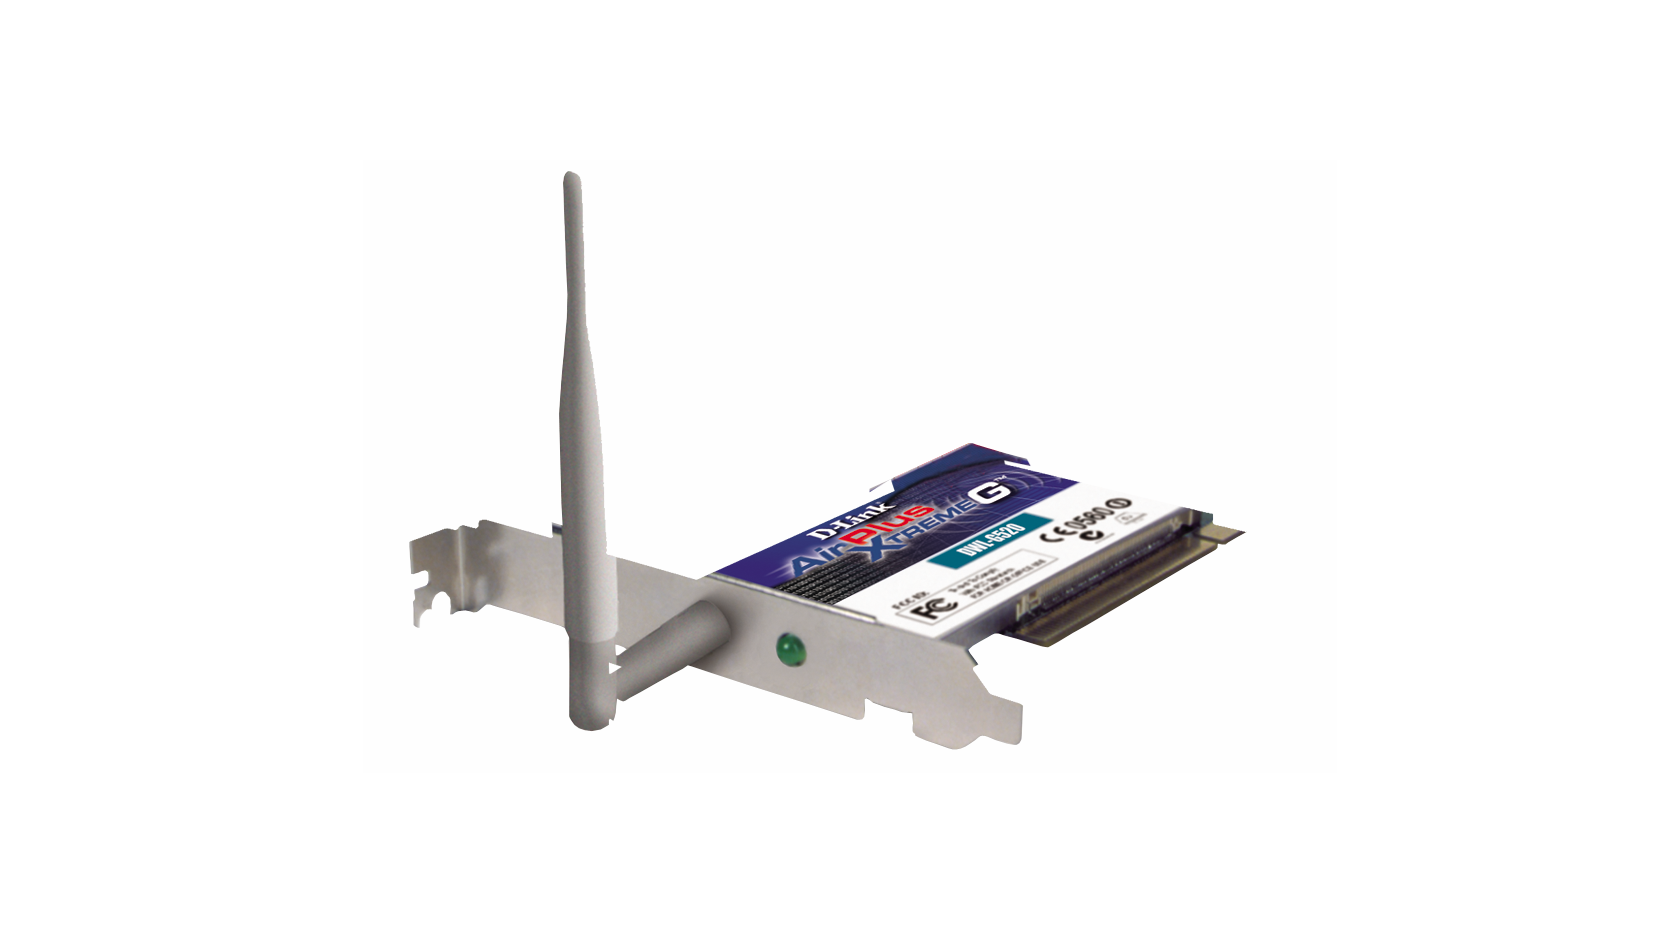 D-Link DWL-G650 WLAN Drivers for Windows